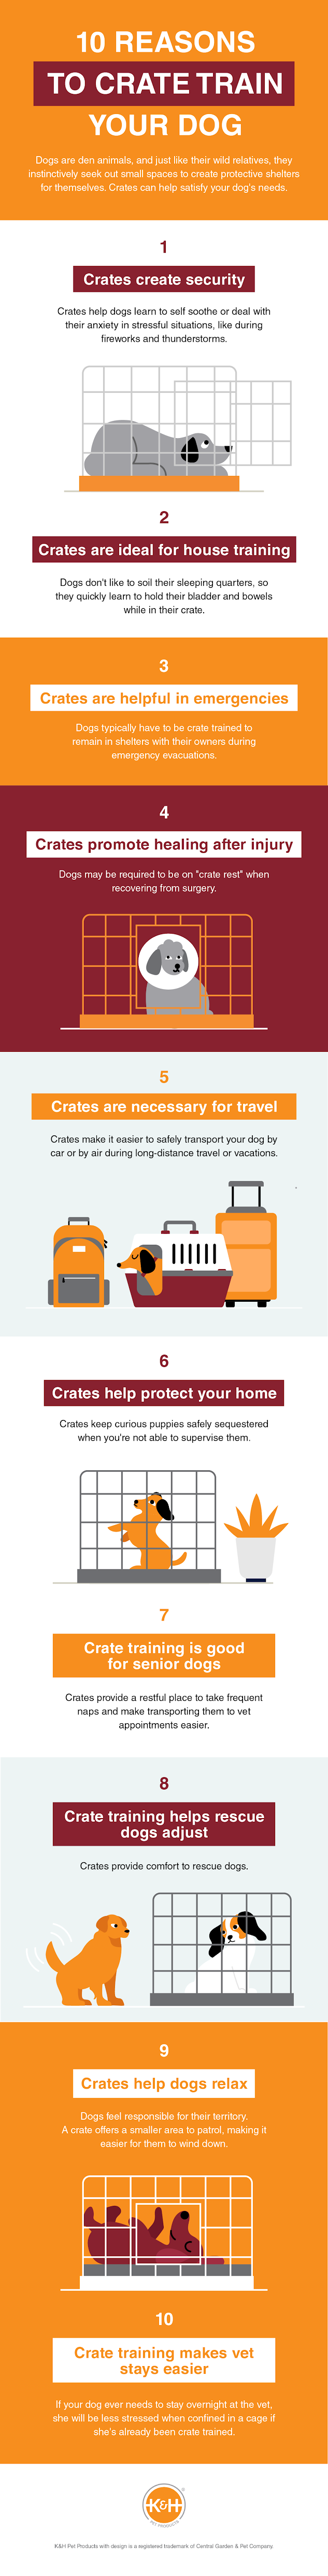 10 Reasons to Crate Train Your Dog #infographic #Pets & Animal #Dogs #Dog Training #Puppies